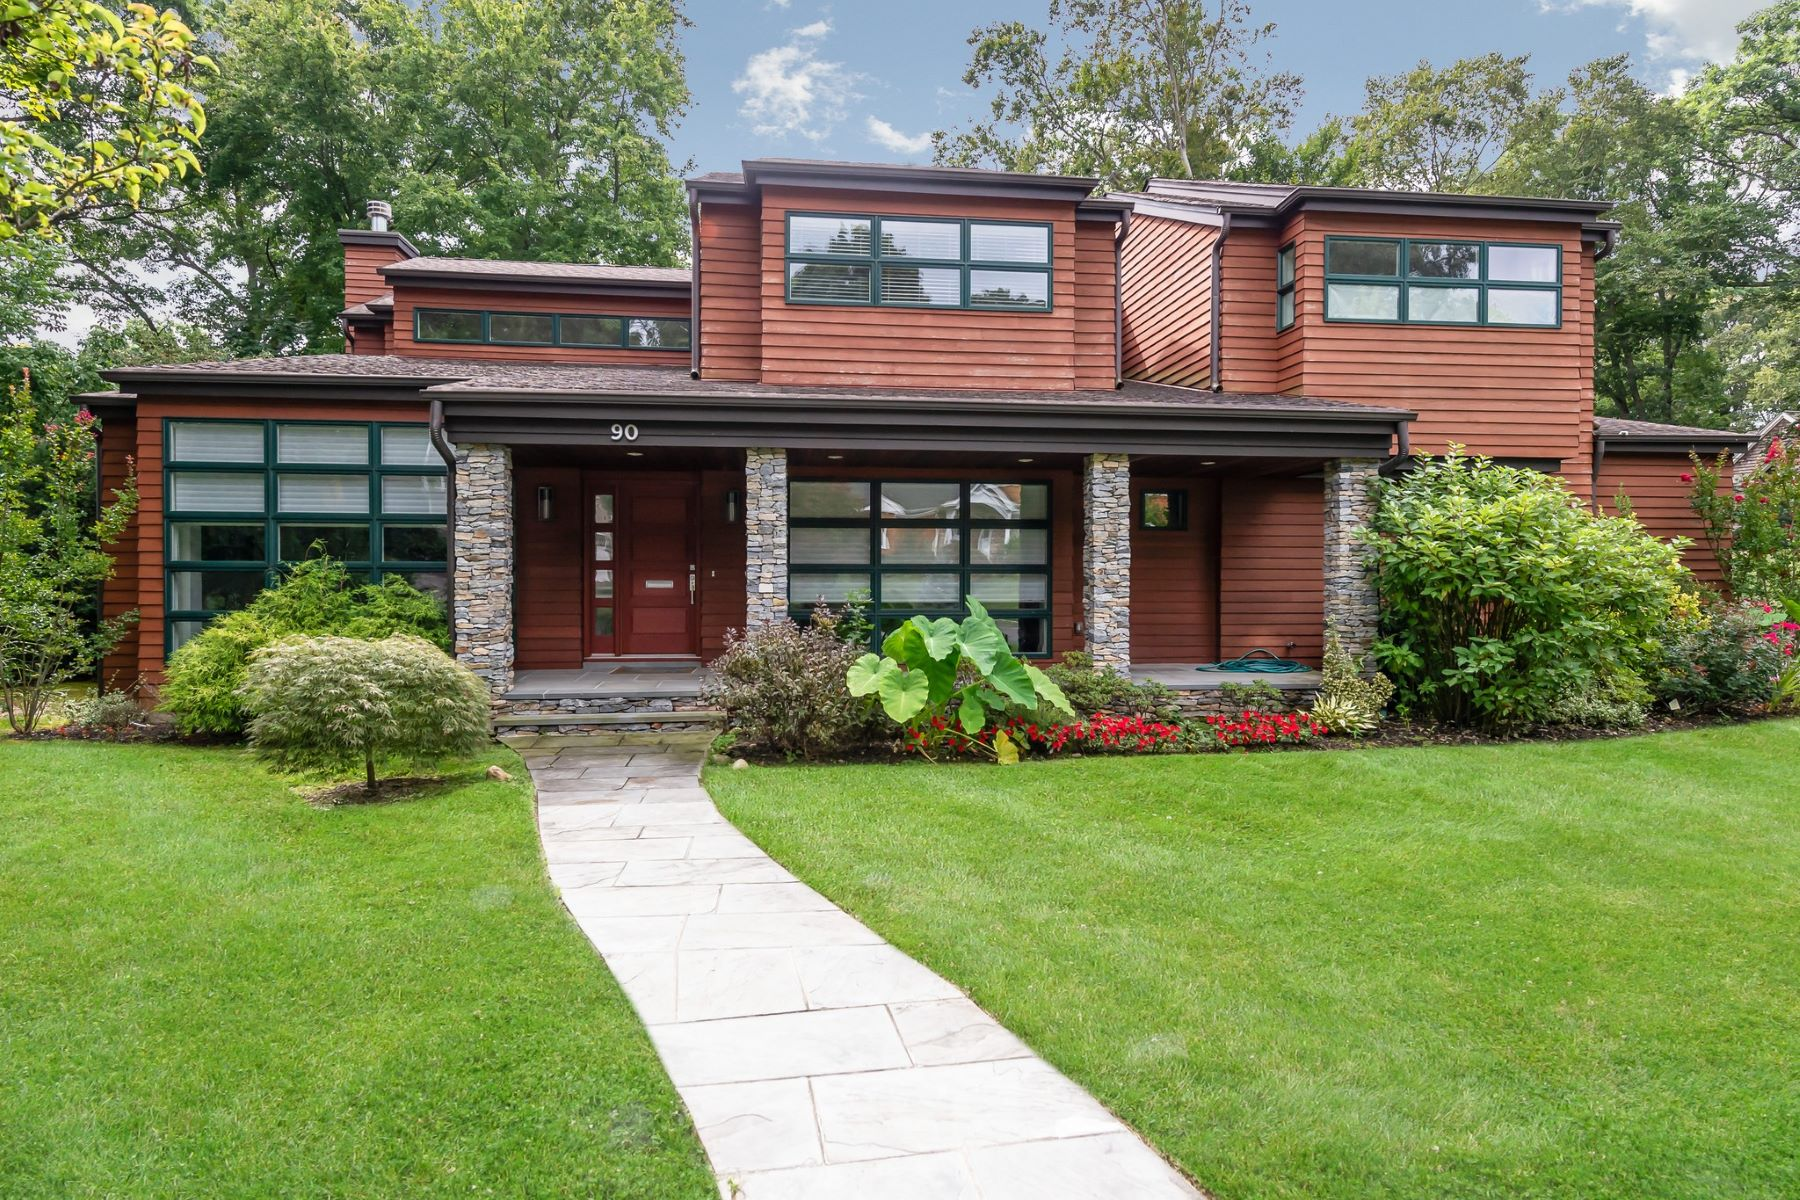 Single Family Homes for Sale at East Hills 90 Revere Rd East Hills, New York 11577 United States